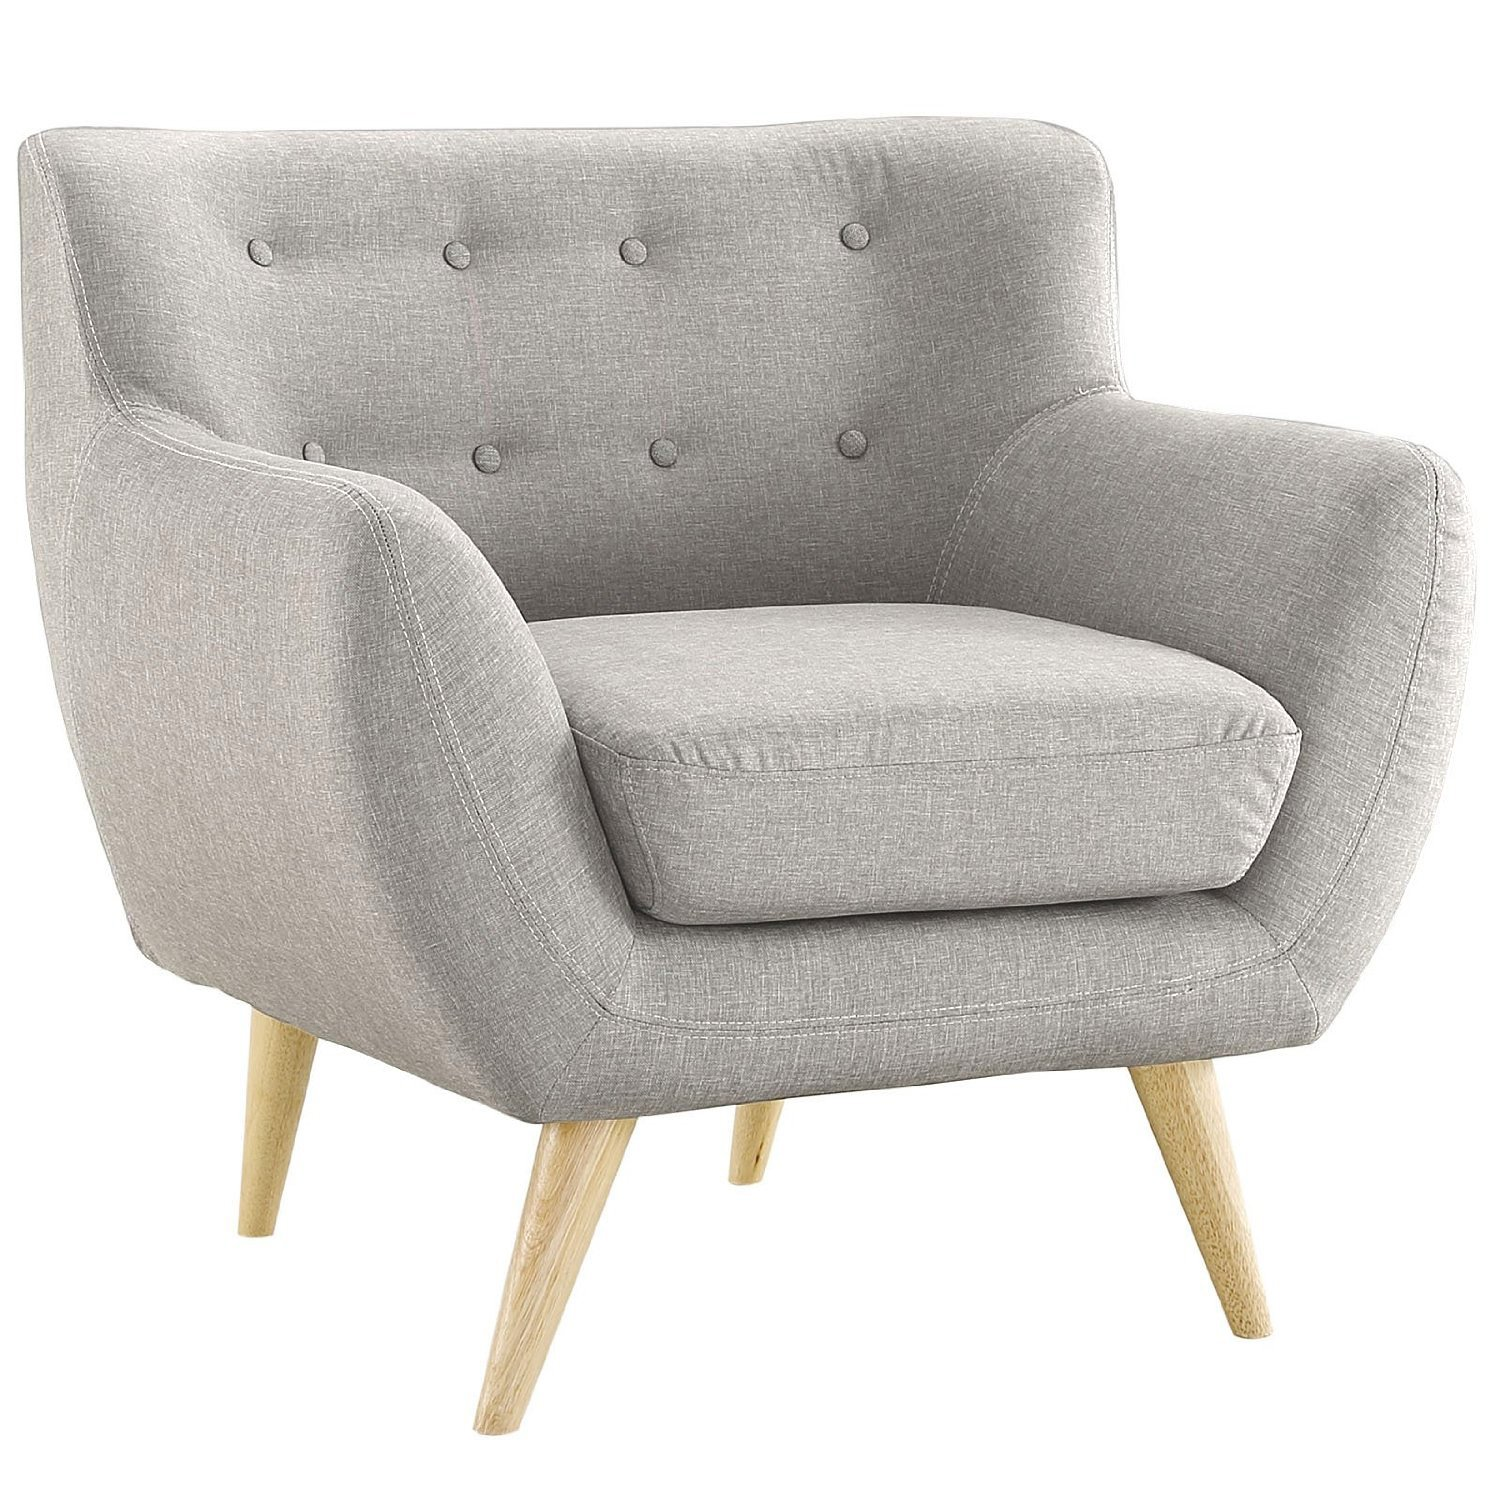 love chairs furniture. amazon.com: mid century modern style sofa / love seat red, grey, yellow, blue - 1 seat, 2 3 (grey, seater): kitchen \u0026 dining chairs furniture